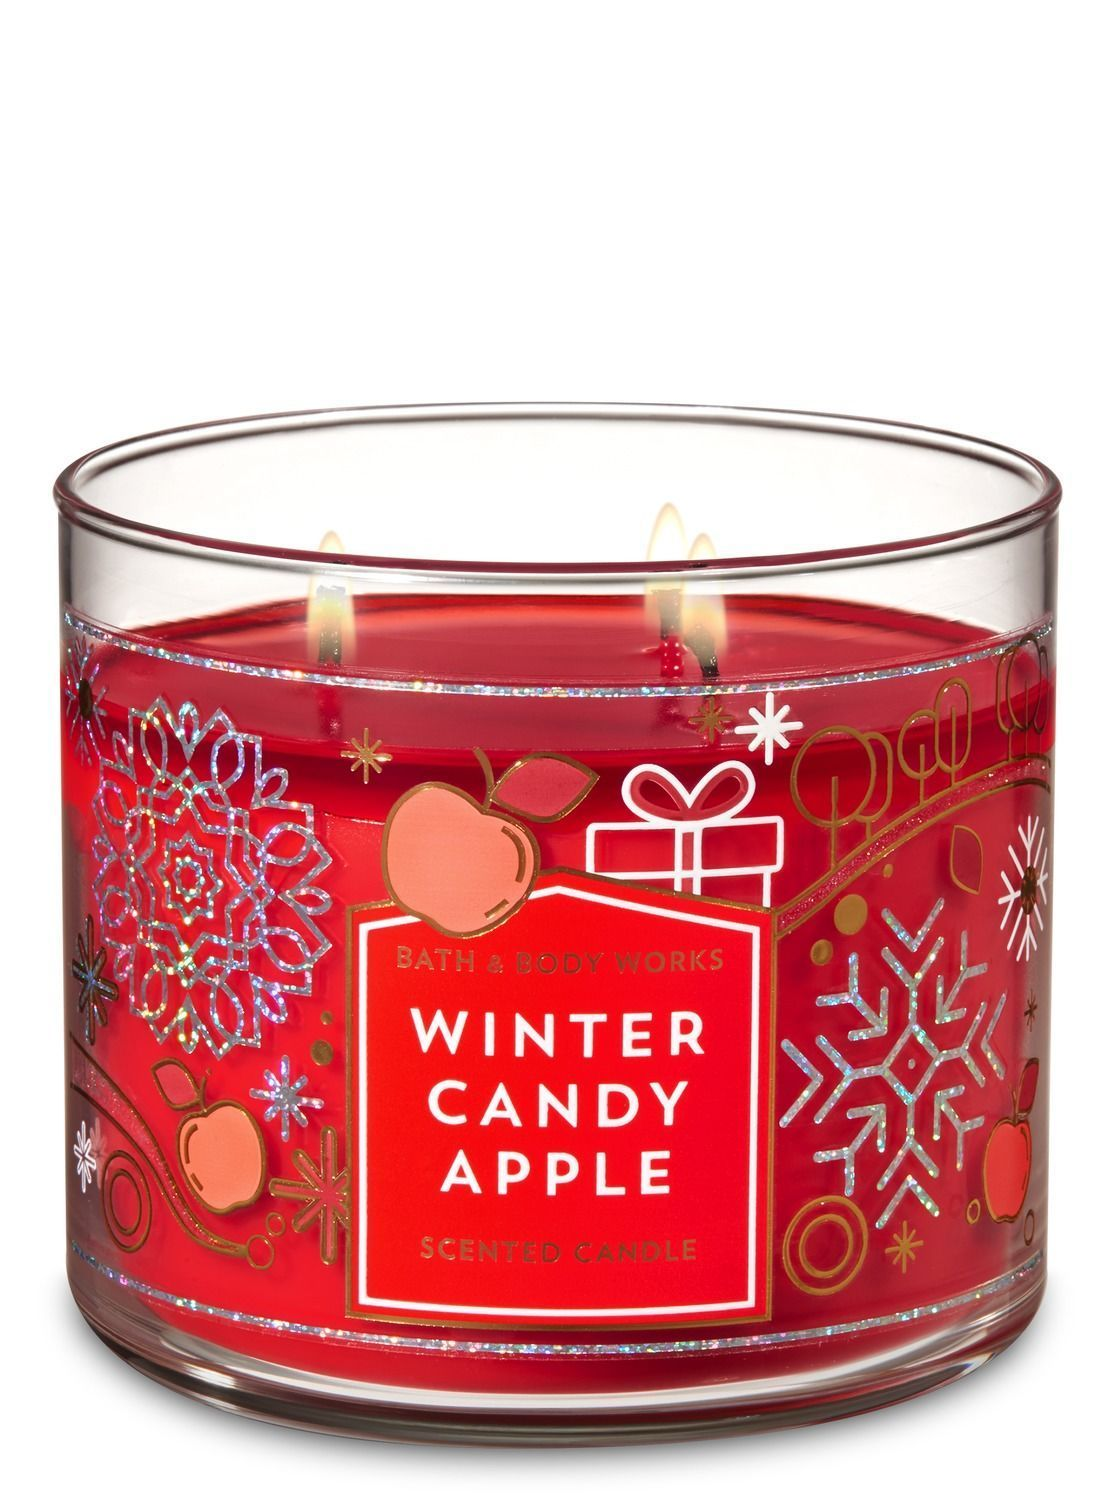 3 Wick Scented Candles Winter Candy Apple 3 Wick Candle By Bath